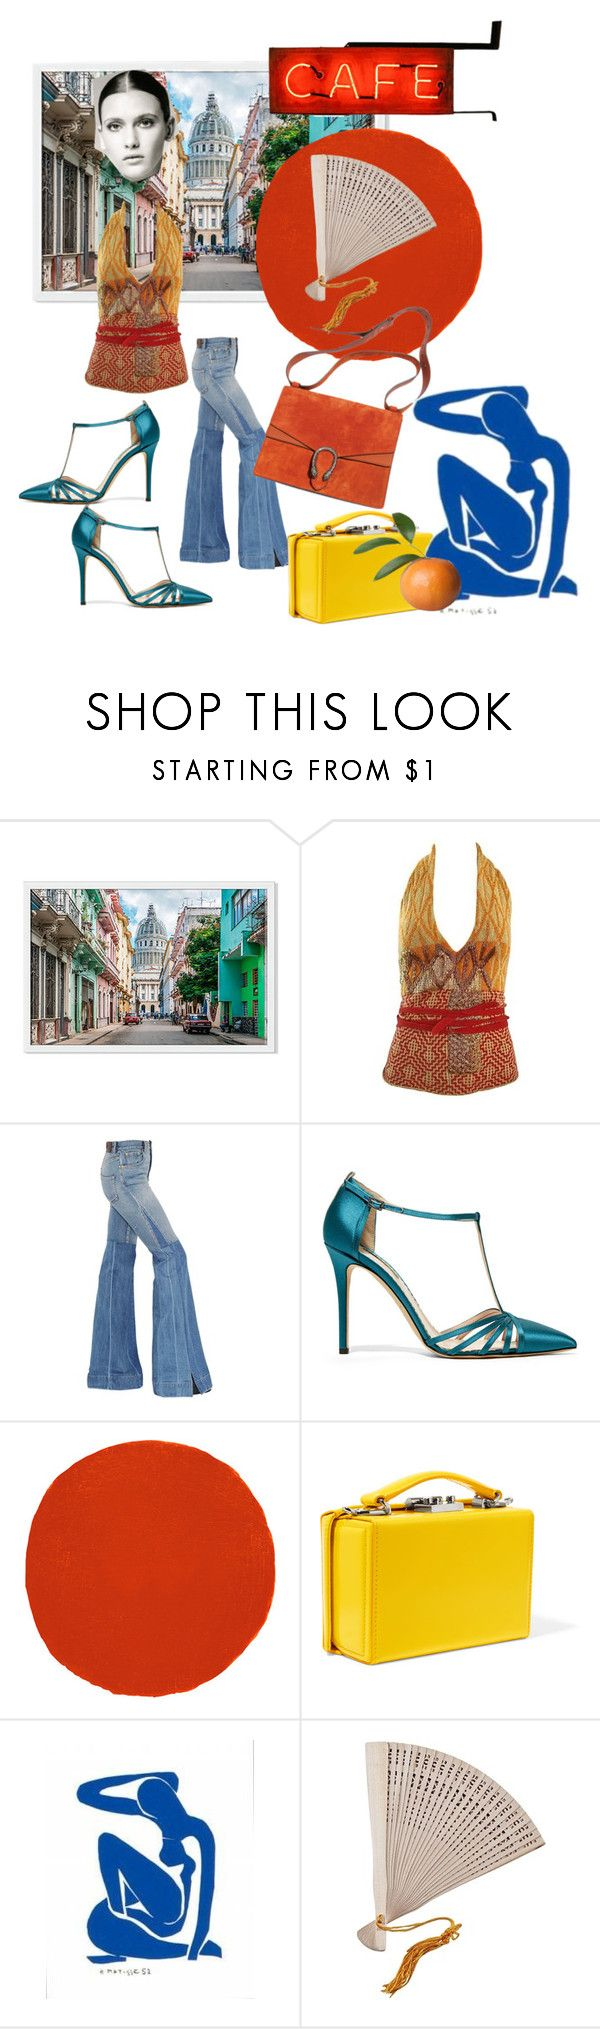 """Untitled #171"" by gina-stewart75 on Polyvore featuring Dries Van Noten, Roberto Cavalli, SJP, Christian Louboutin, Mark Cross and Pier 1 Imports"